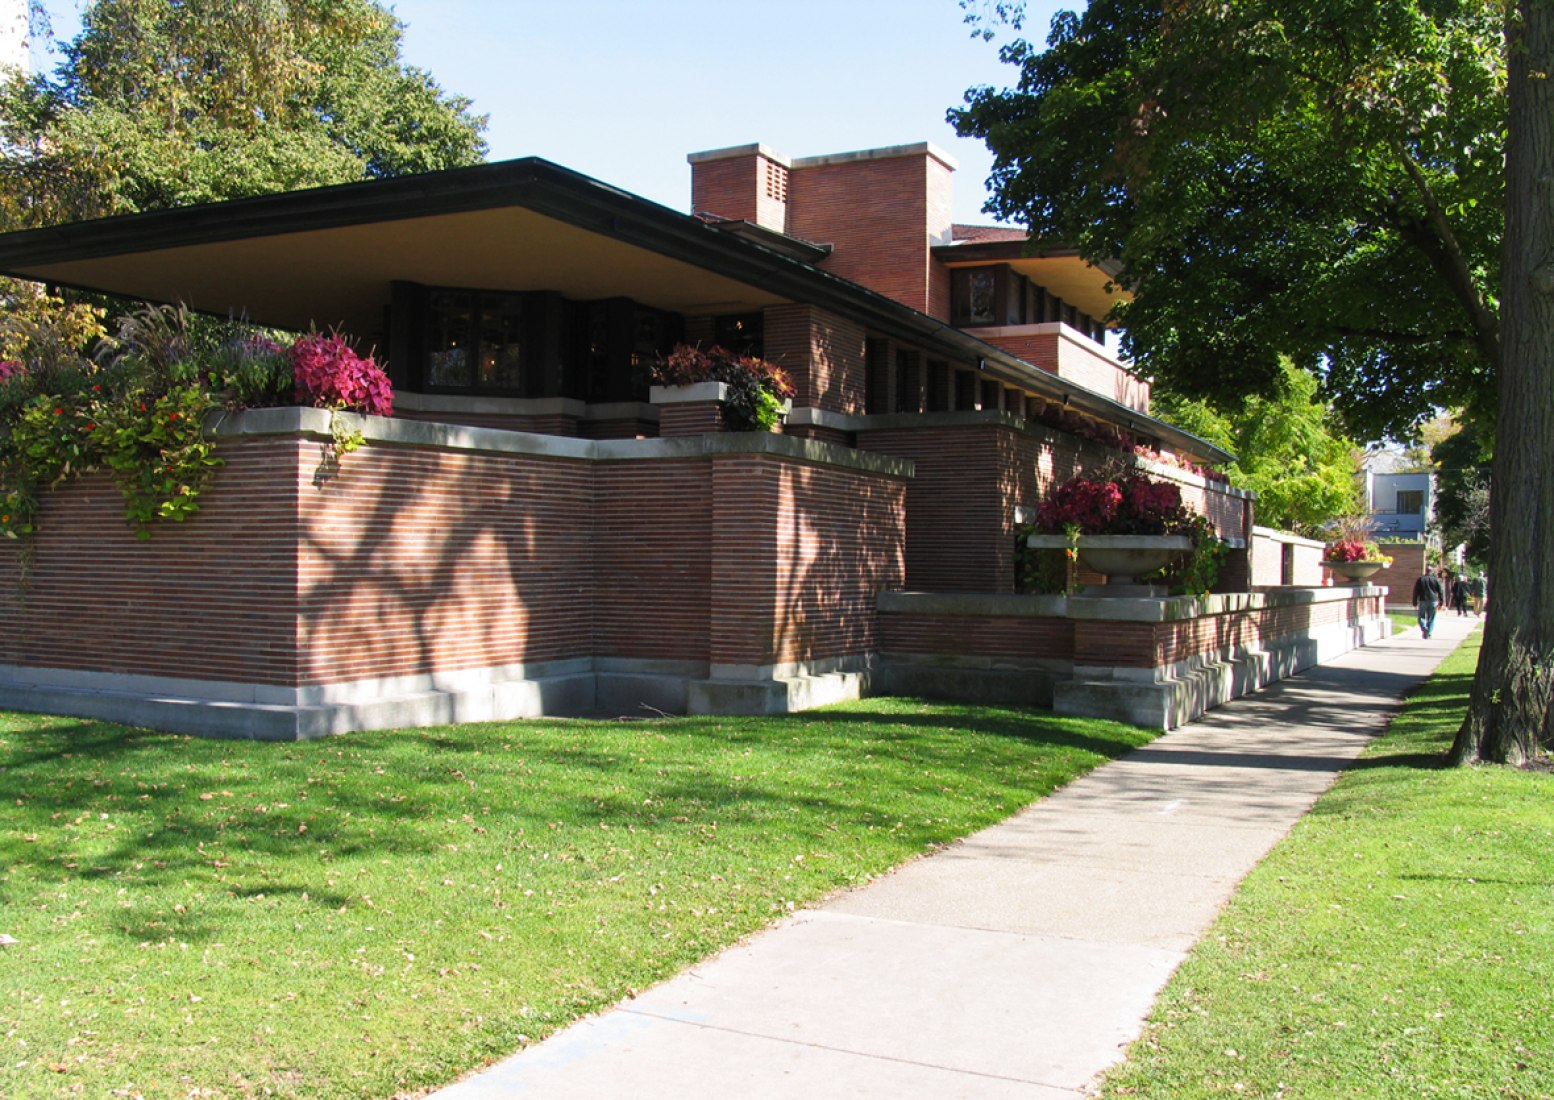 Exterior view. The best example of the Prairie Houses, the Robie House, 1908-1910. Photography © José Juan Barba.